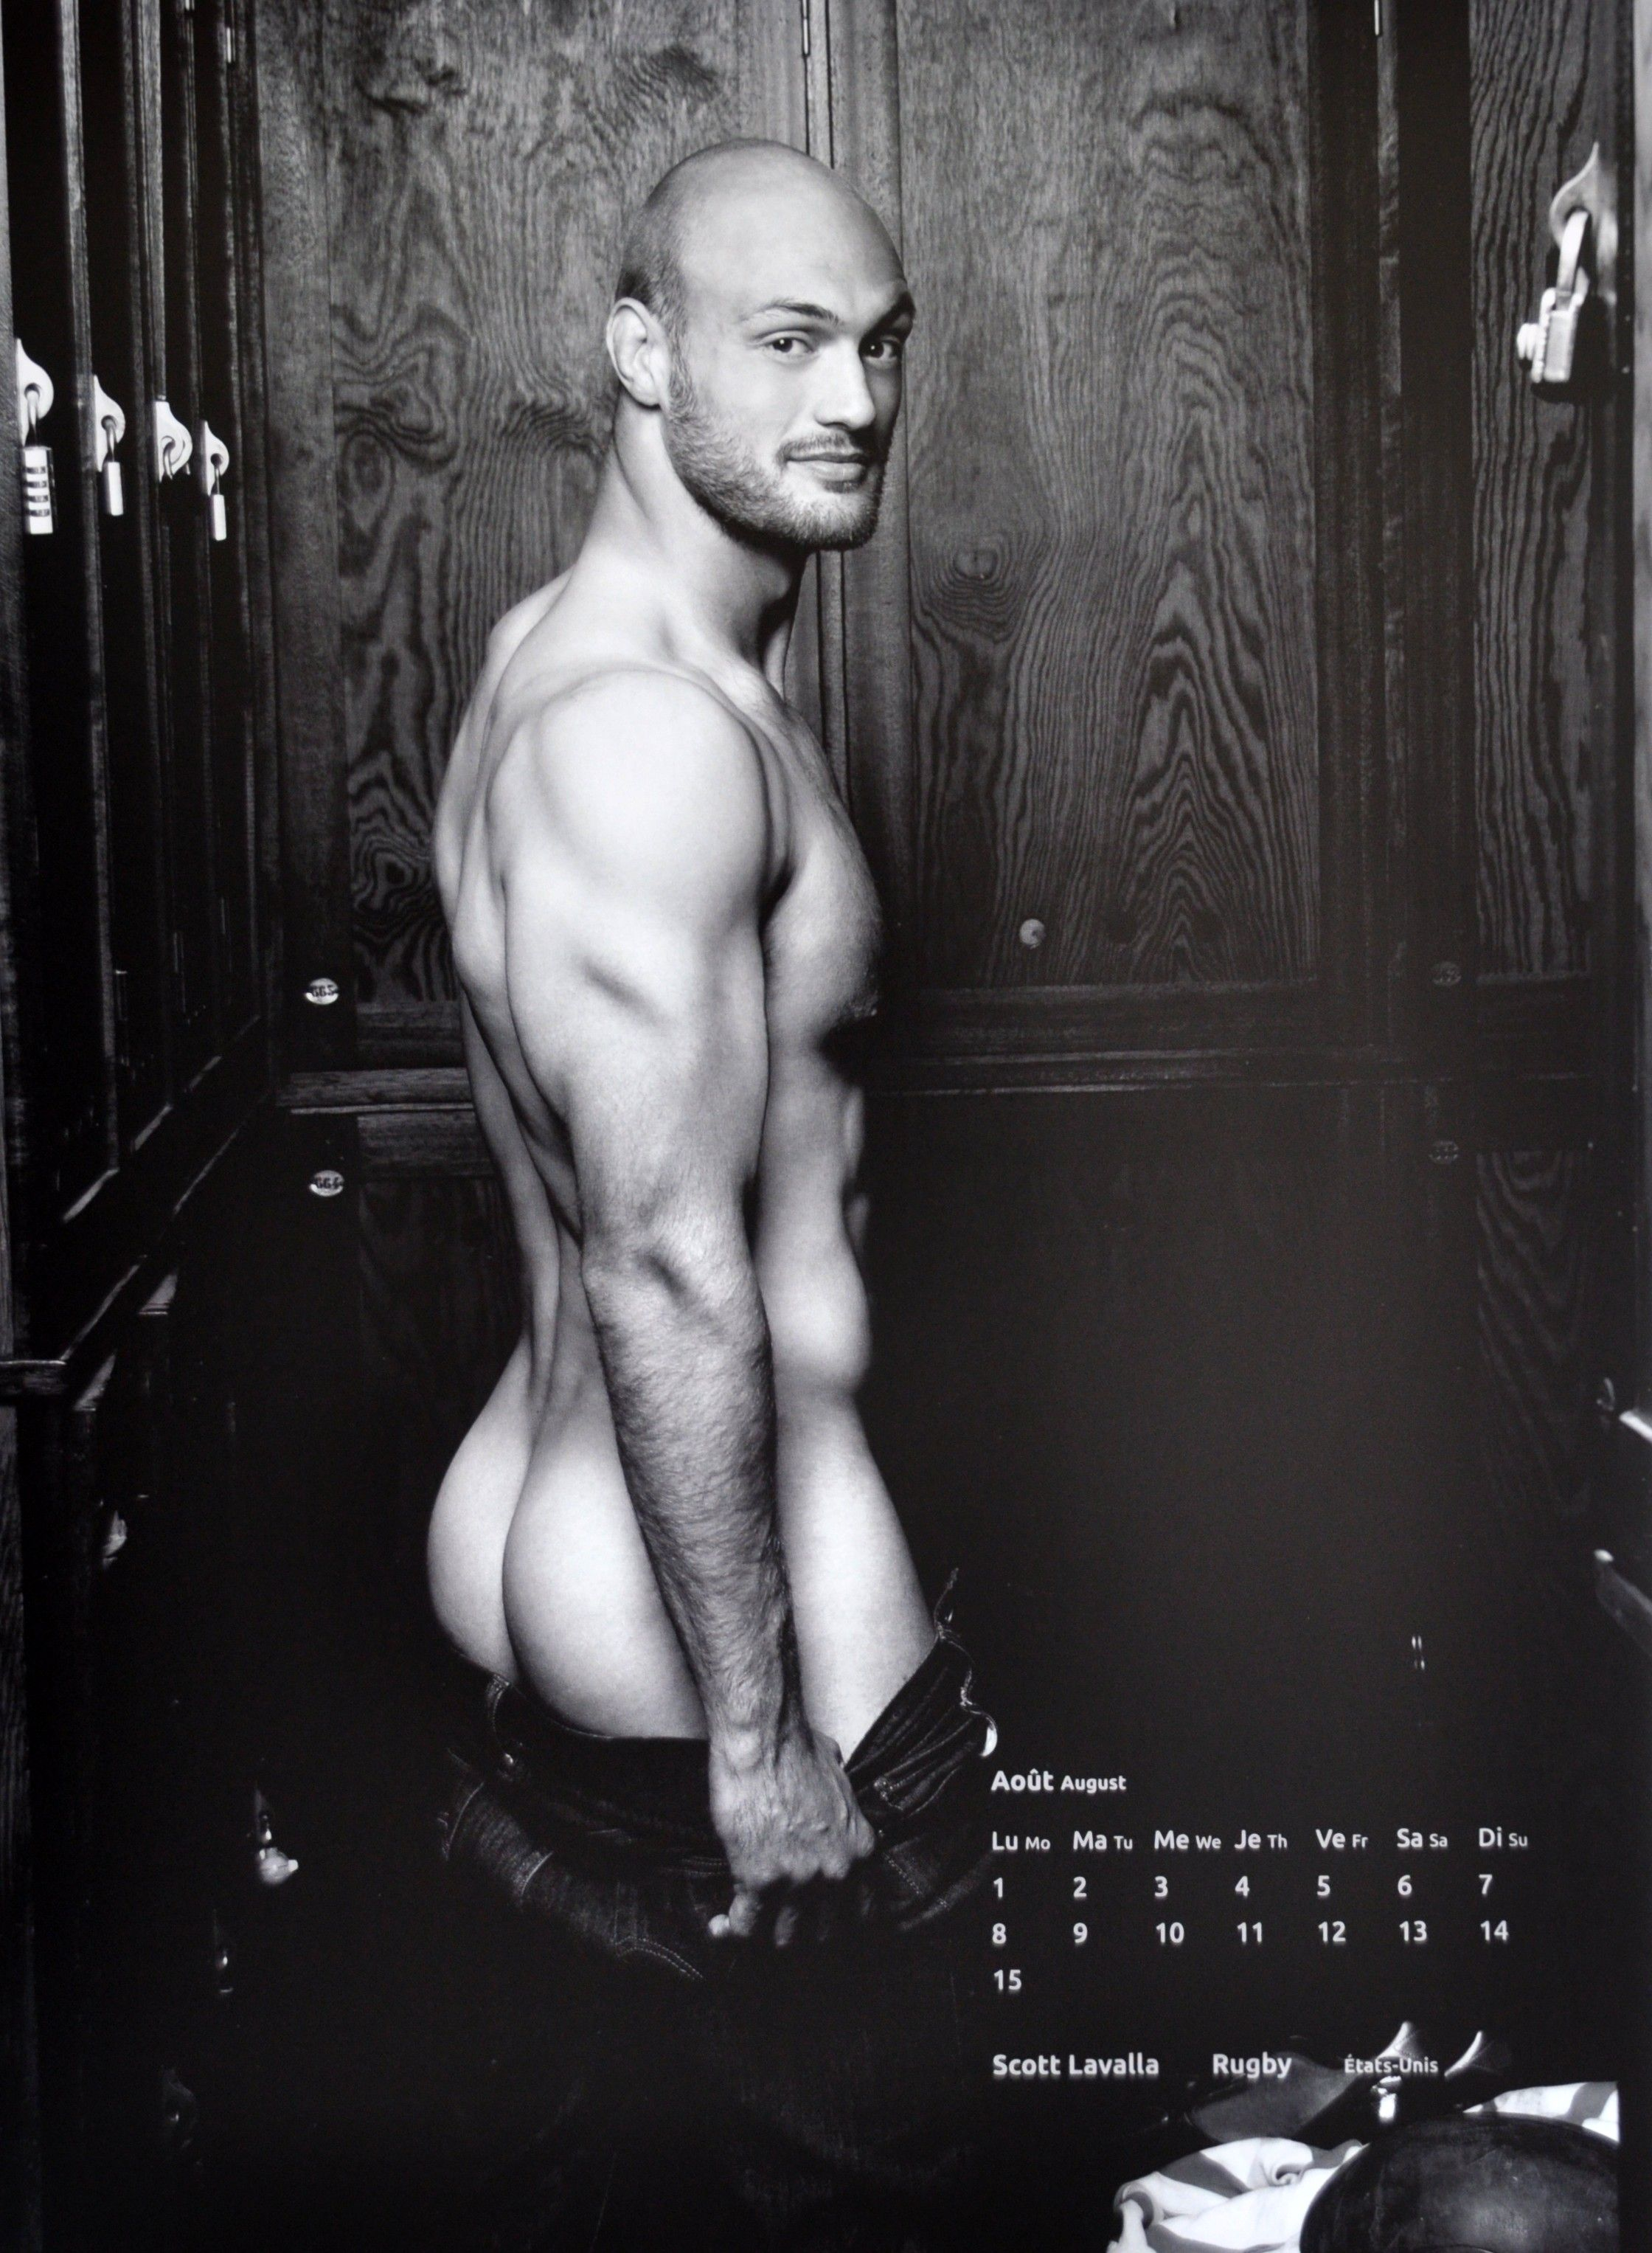 dieux du stade 2016 calendar scott lavalla just love to show off